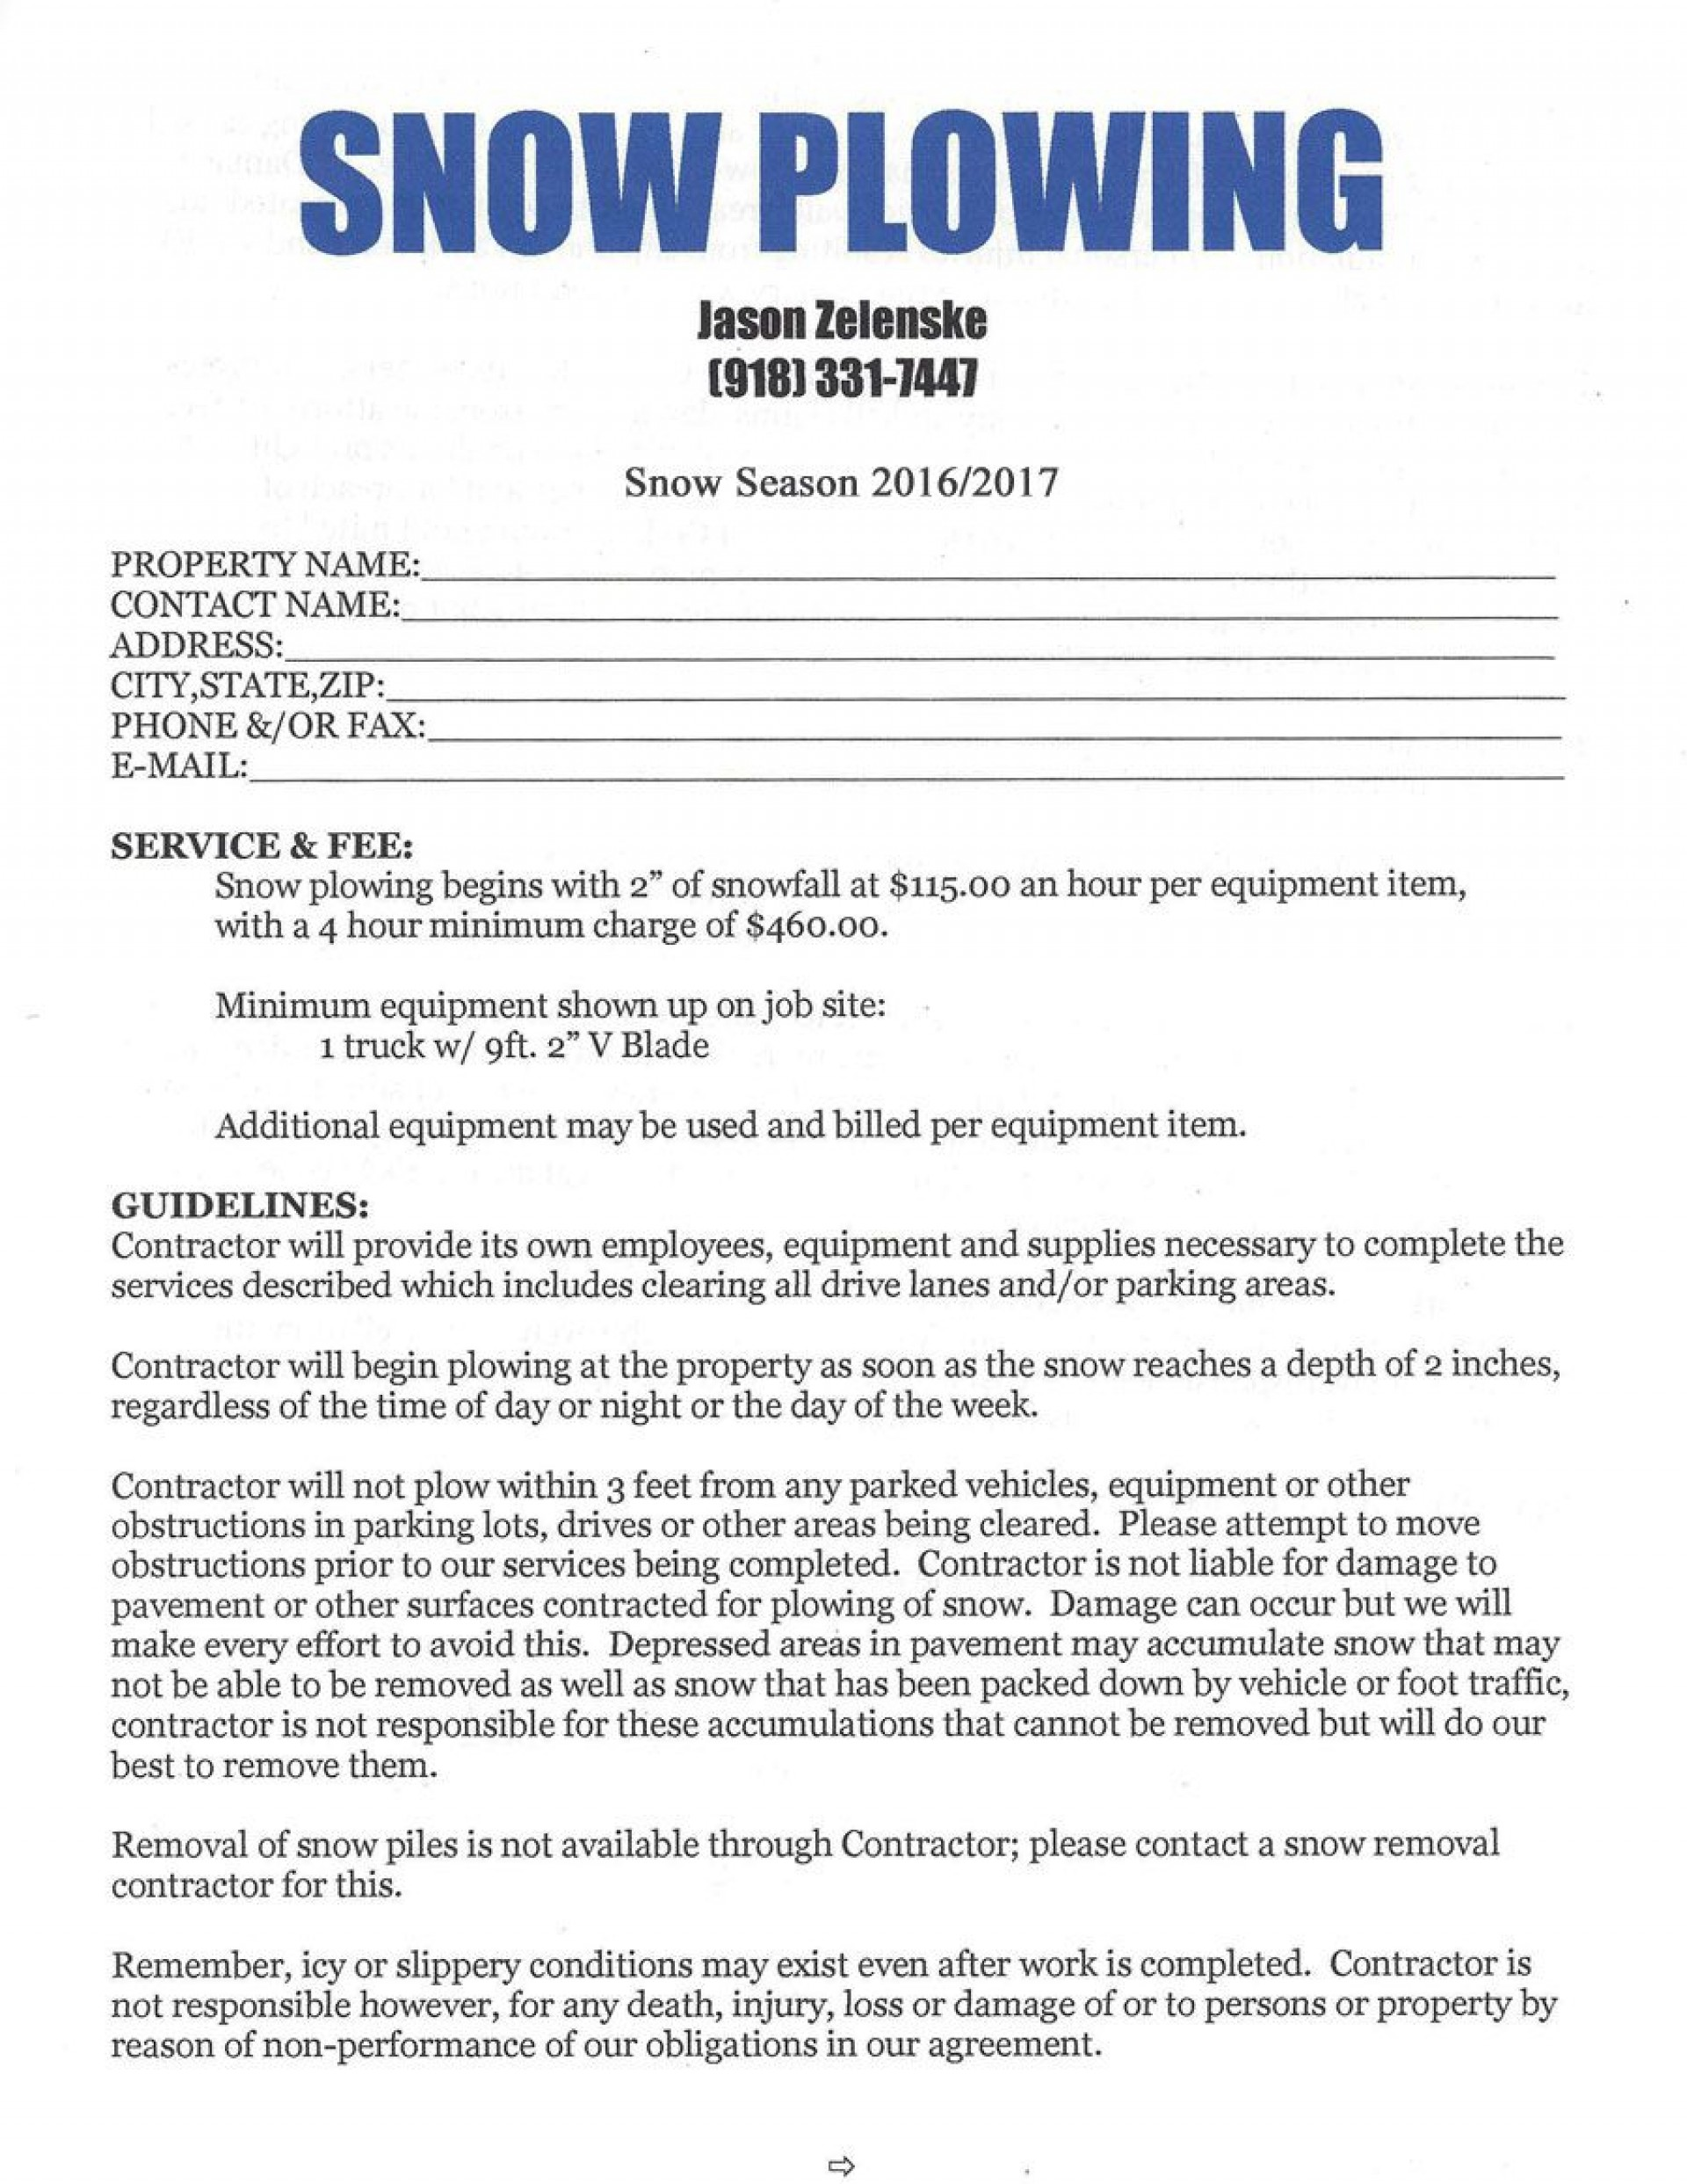 009 Best Snow Removal Contract Template Concept  Templates Free Printable Simple Seasonal Plow Agreement1920